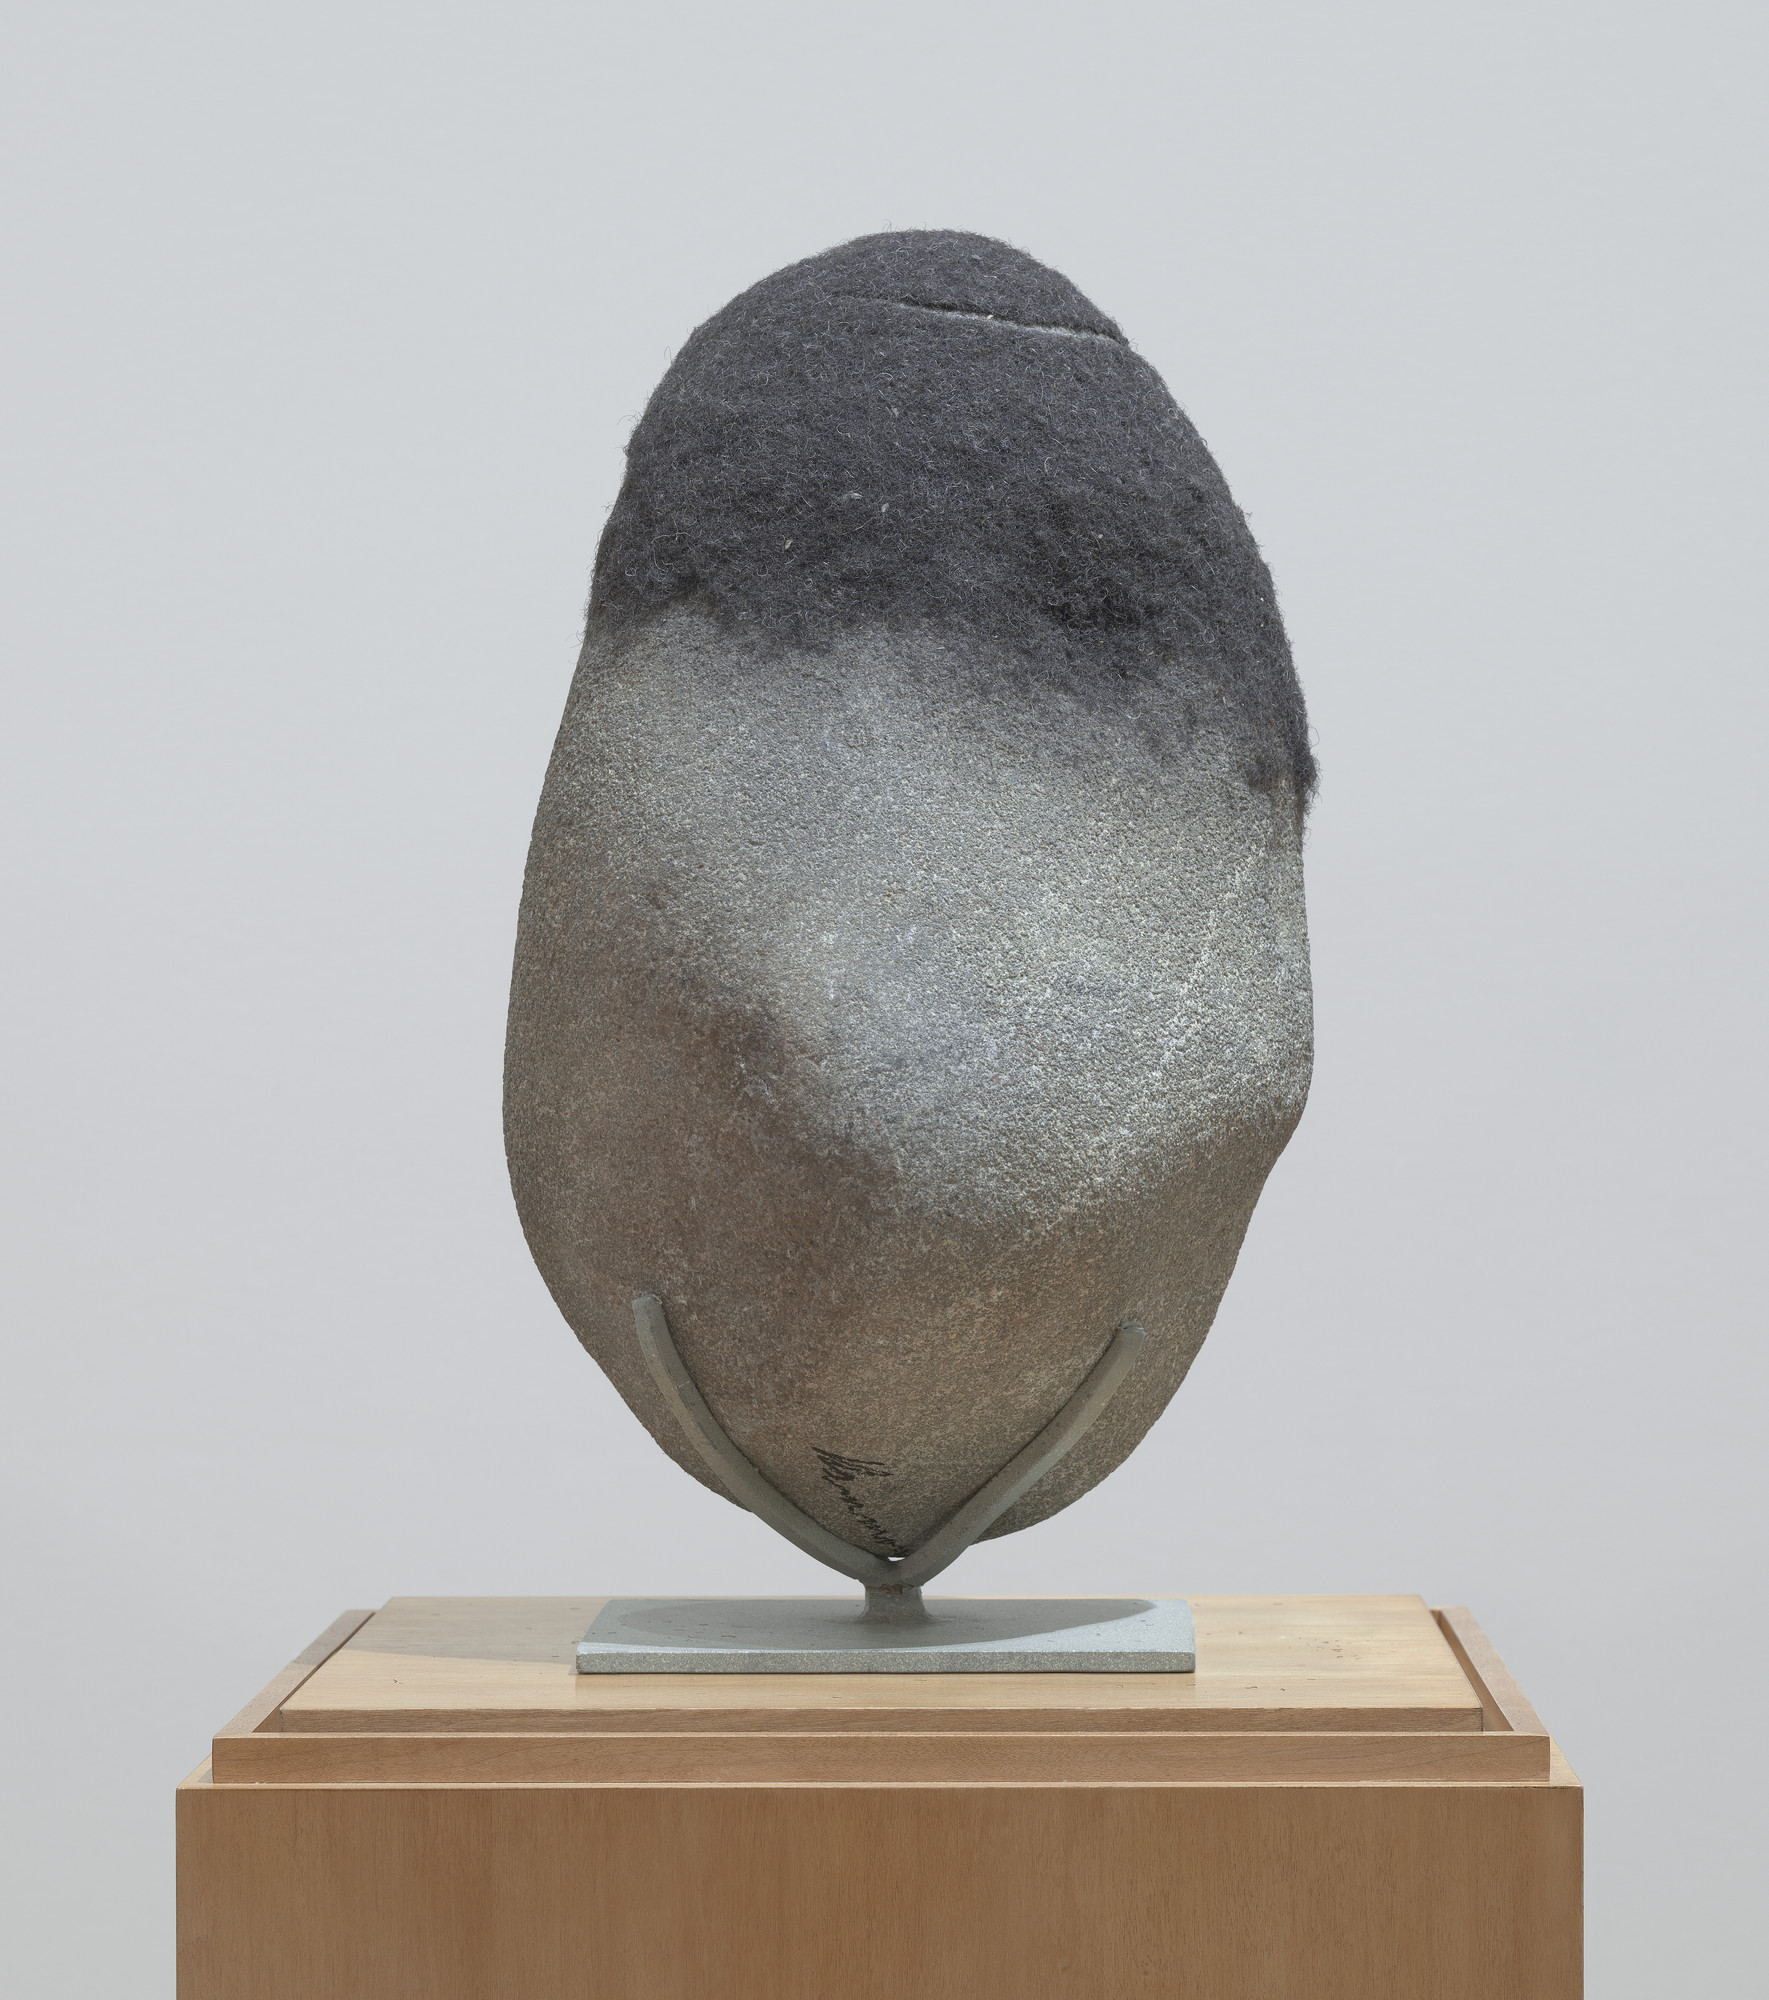 David Hammons. Untitled (Rock Head). 2005